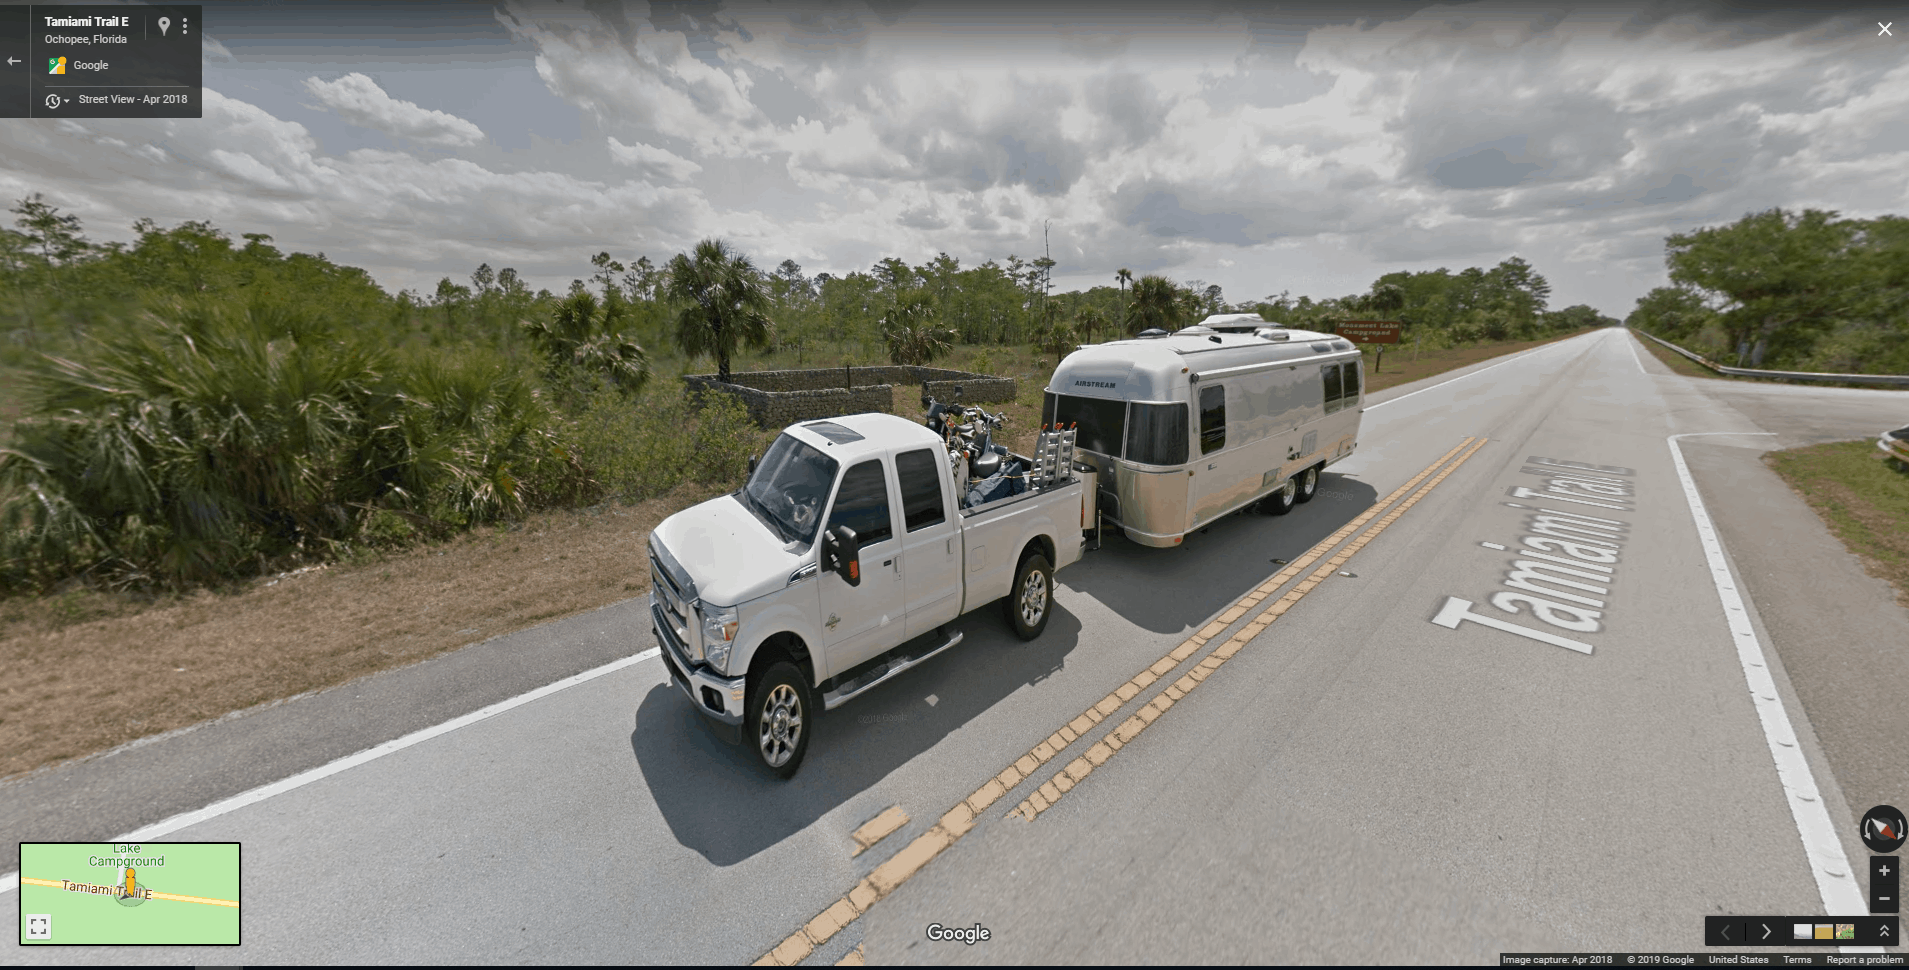 Check Out Our Airstream on Google Maps Street View - RV Hive